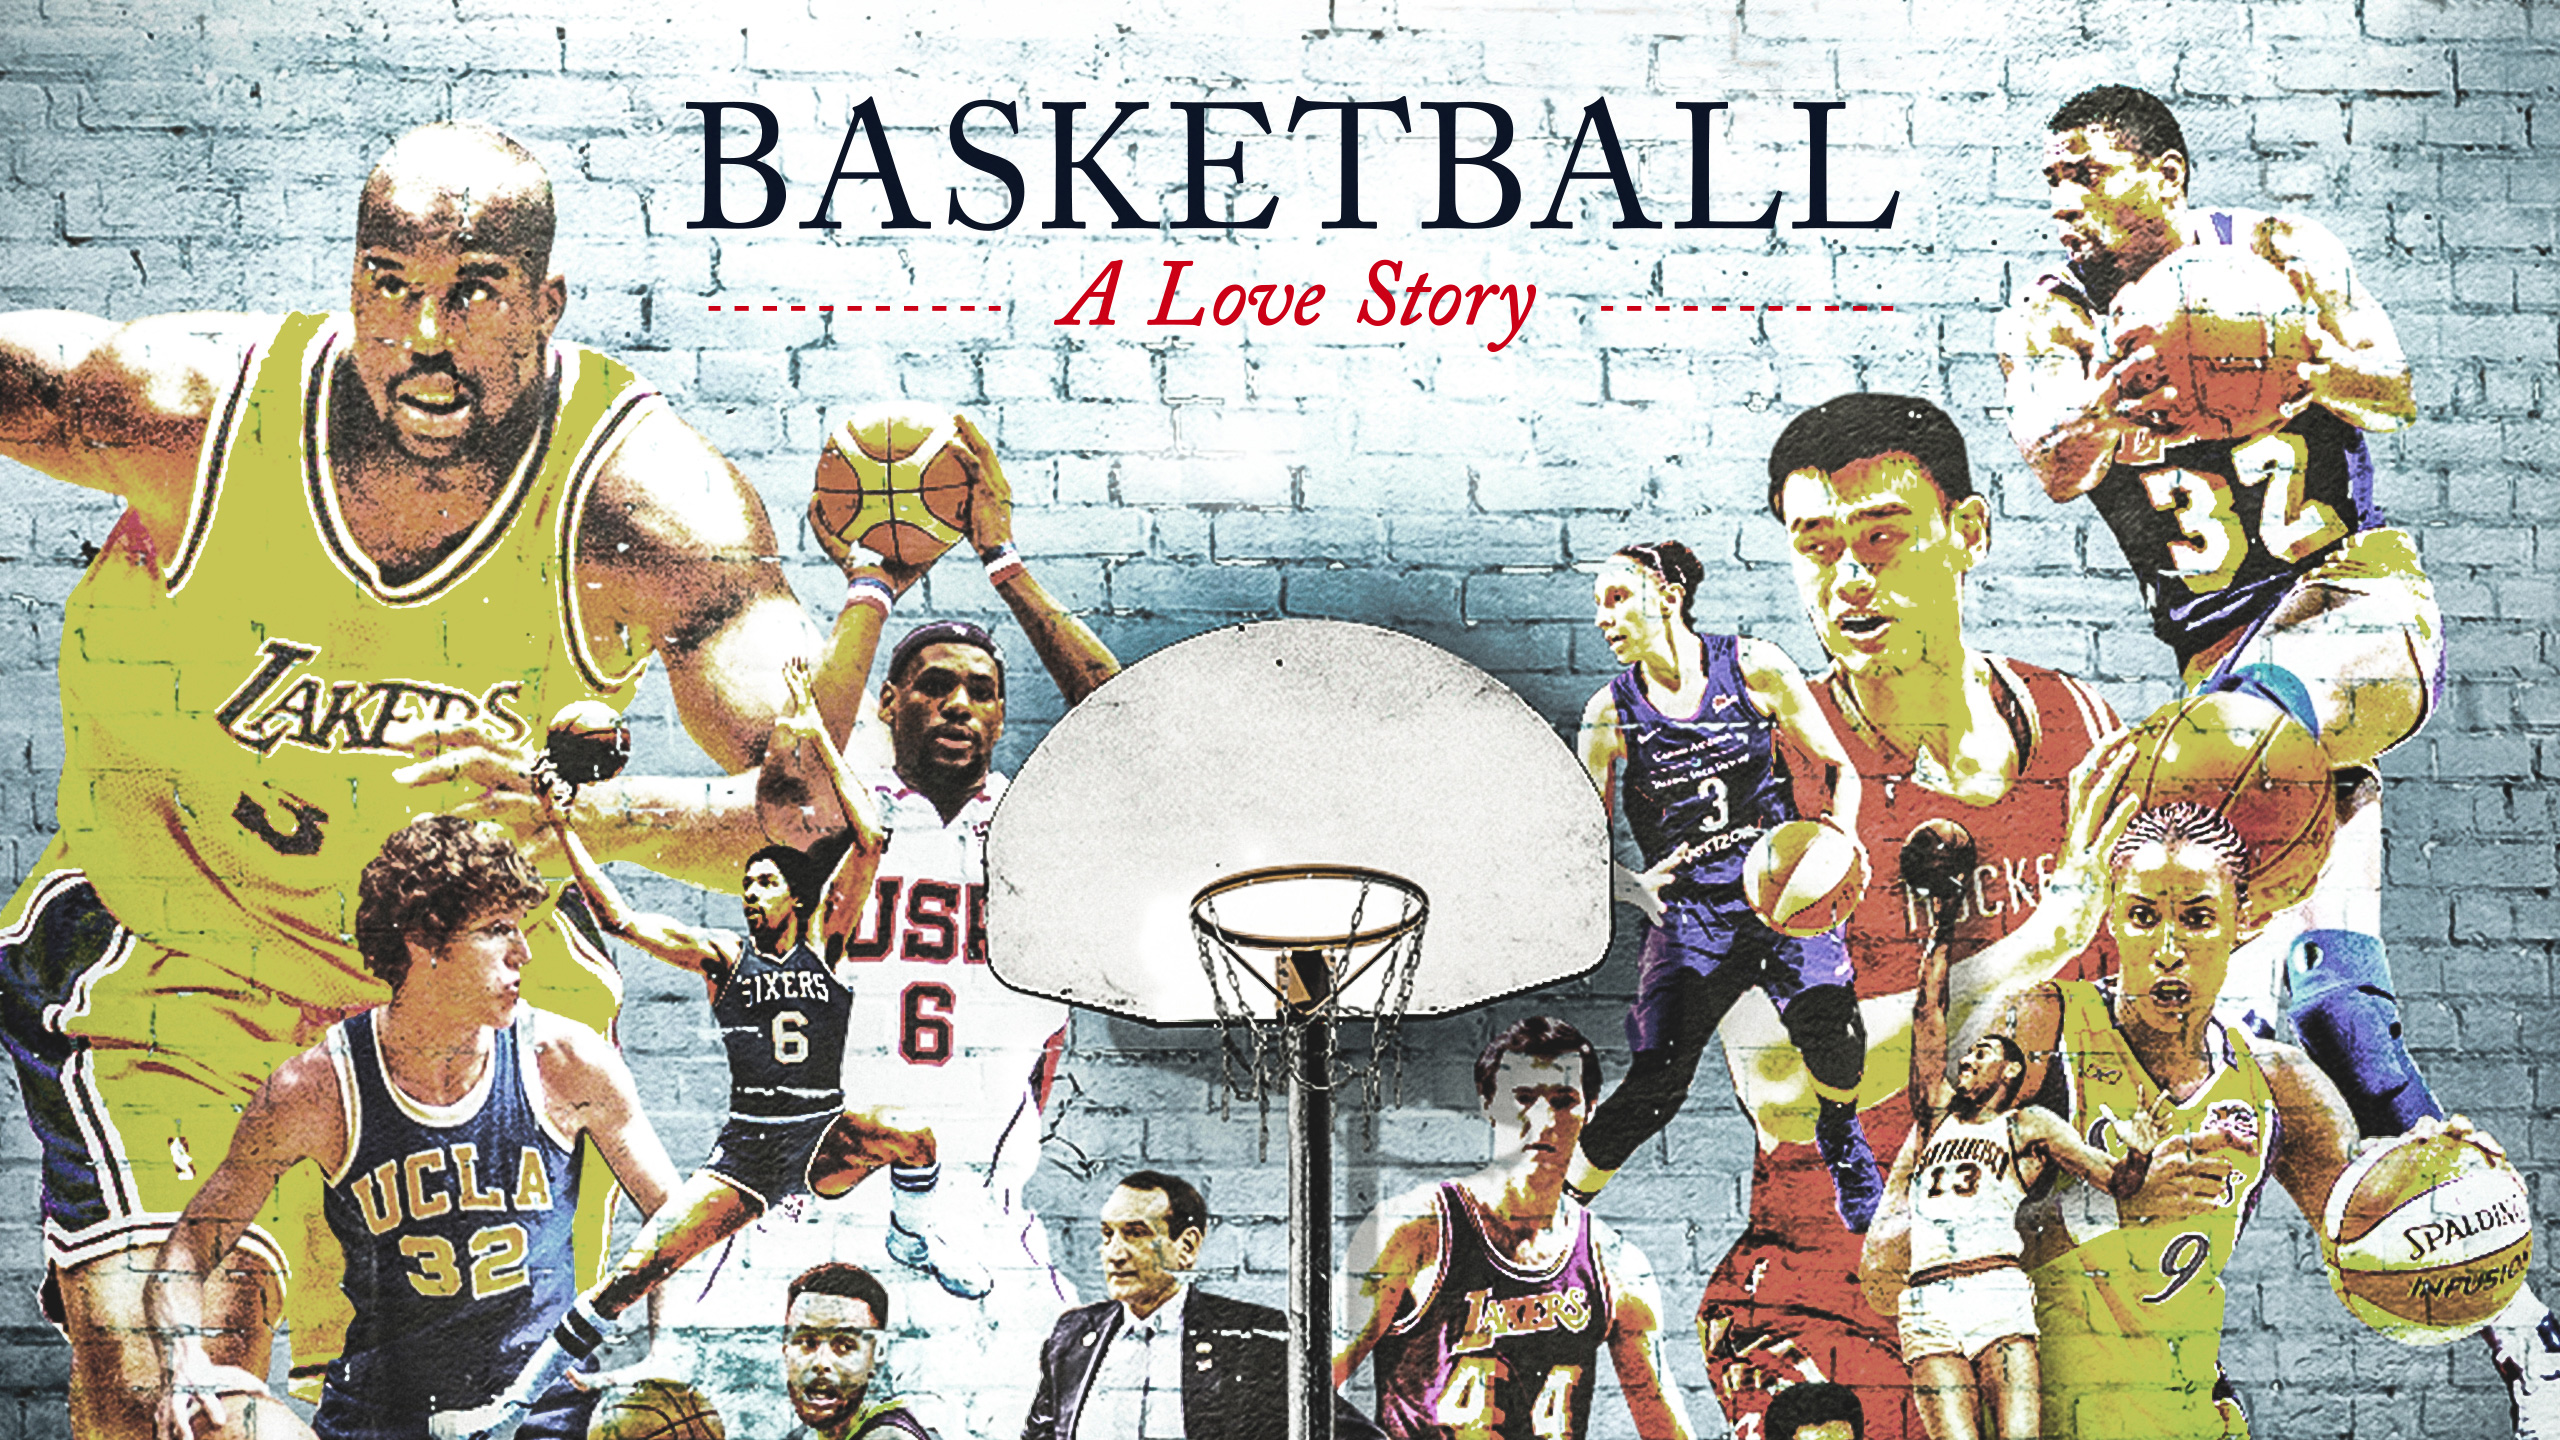 Basketball: A Love Story - Episode 1